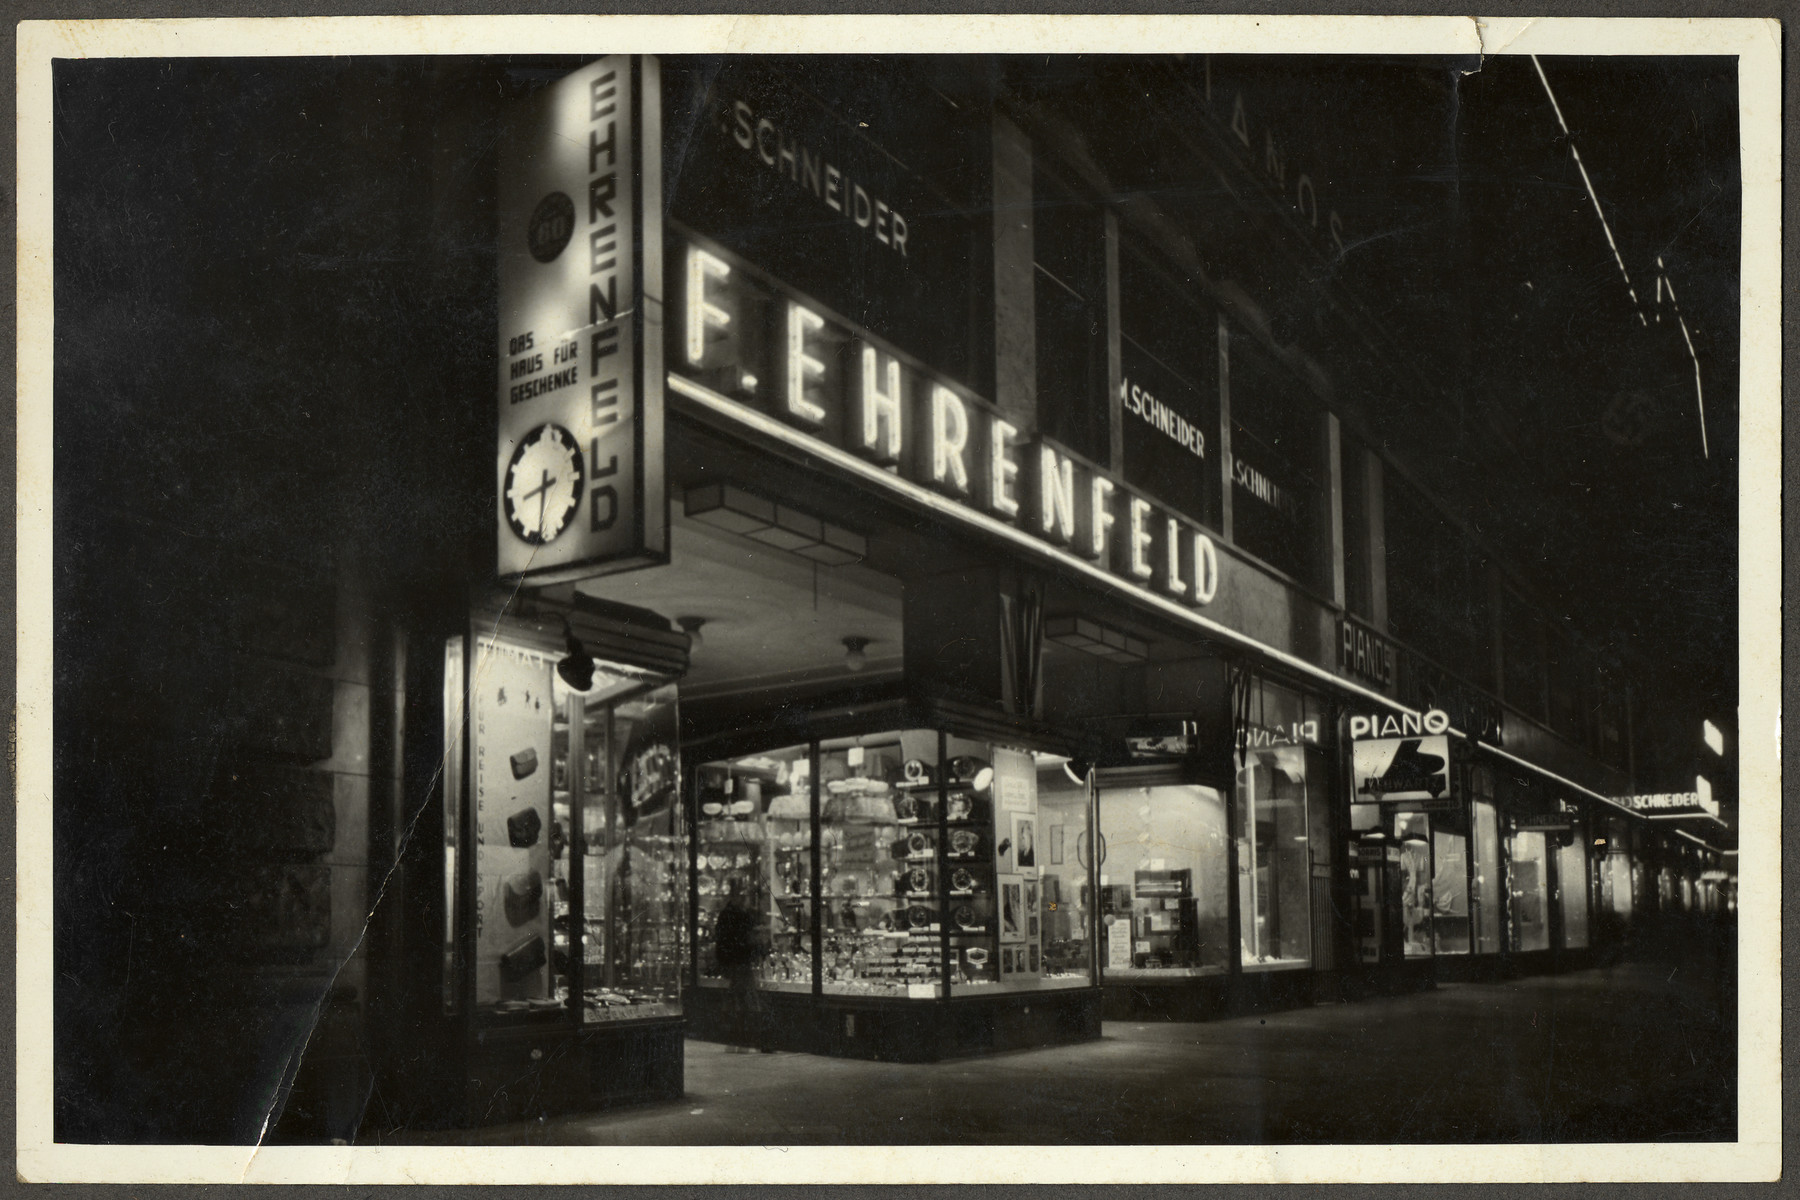 Exterior view of the Ehrenfeld's gift shop, Haus der Geschenke at Zeil 102-104.